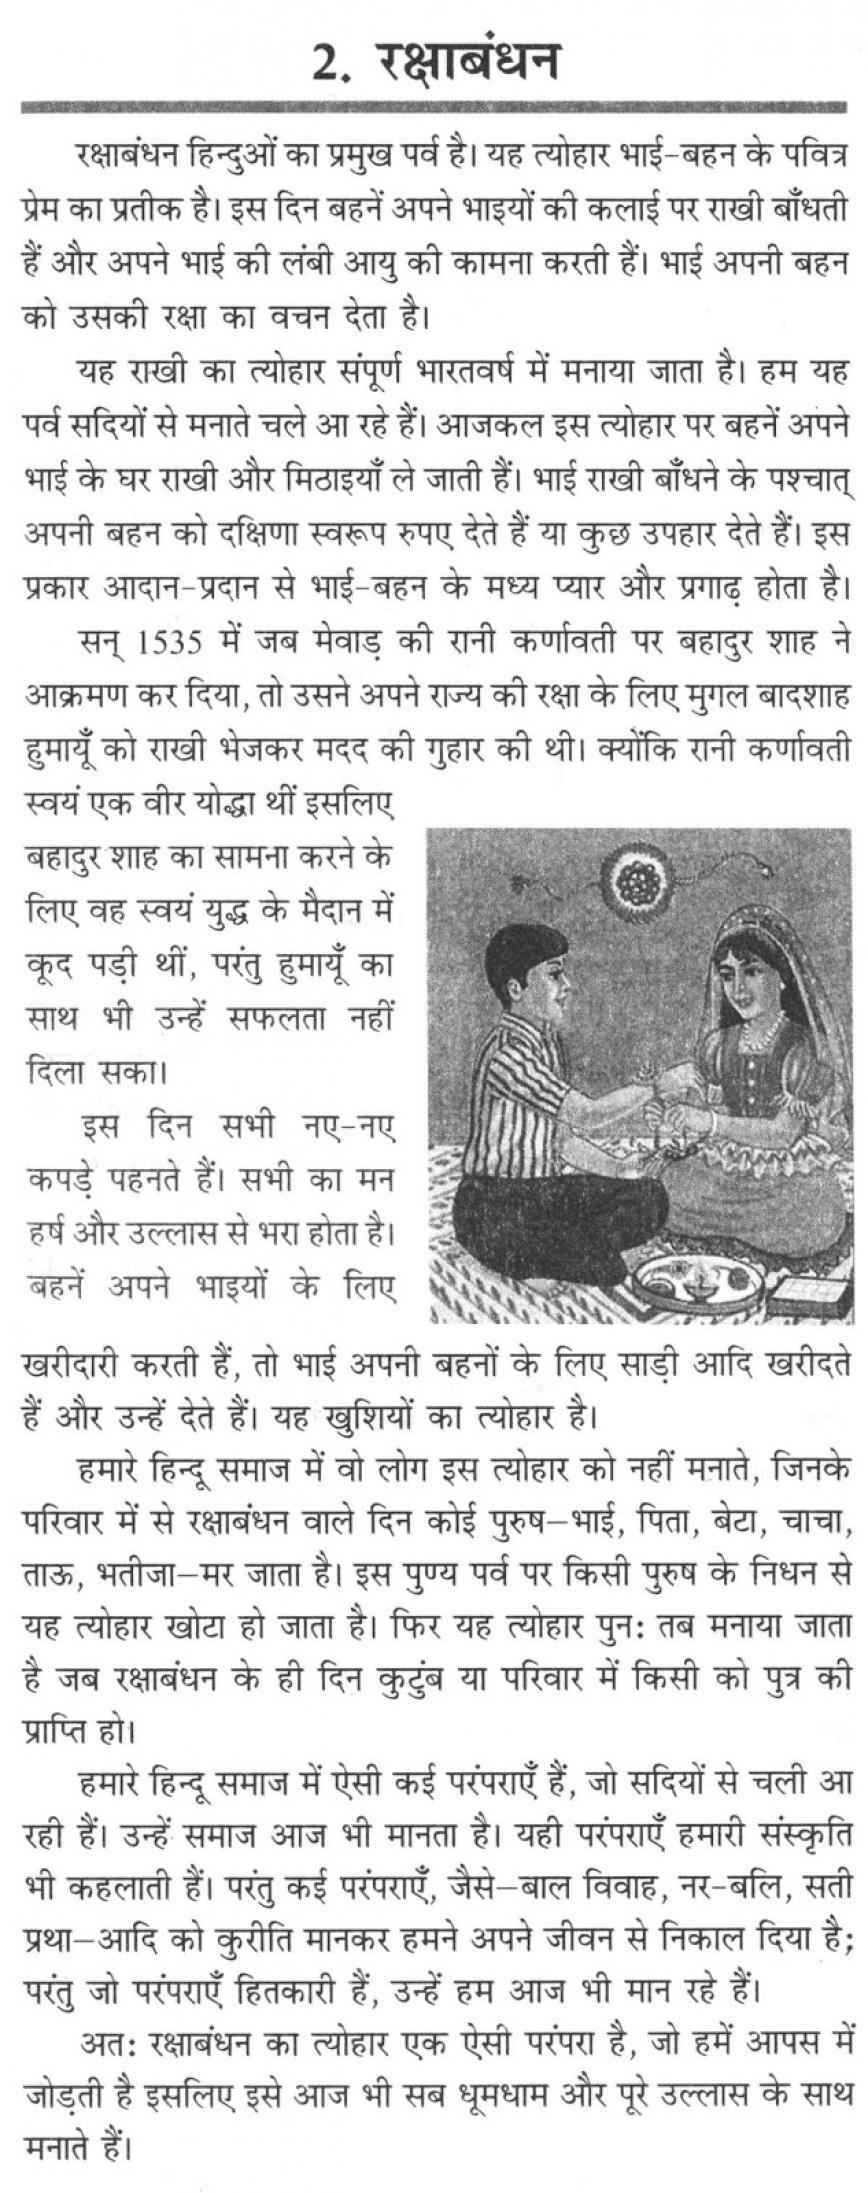 015 Raksha20bandhan20essay20in20hindi202016 Essay Example Good Habits In Exceptional Hindi Habit Eating And Bad 868